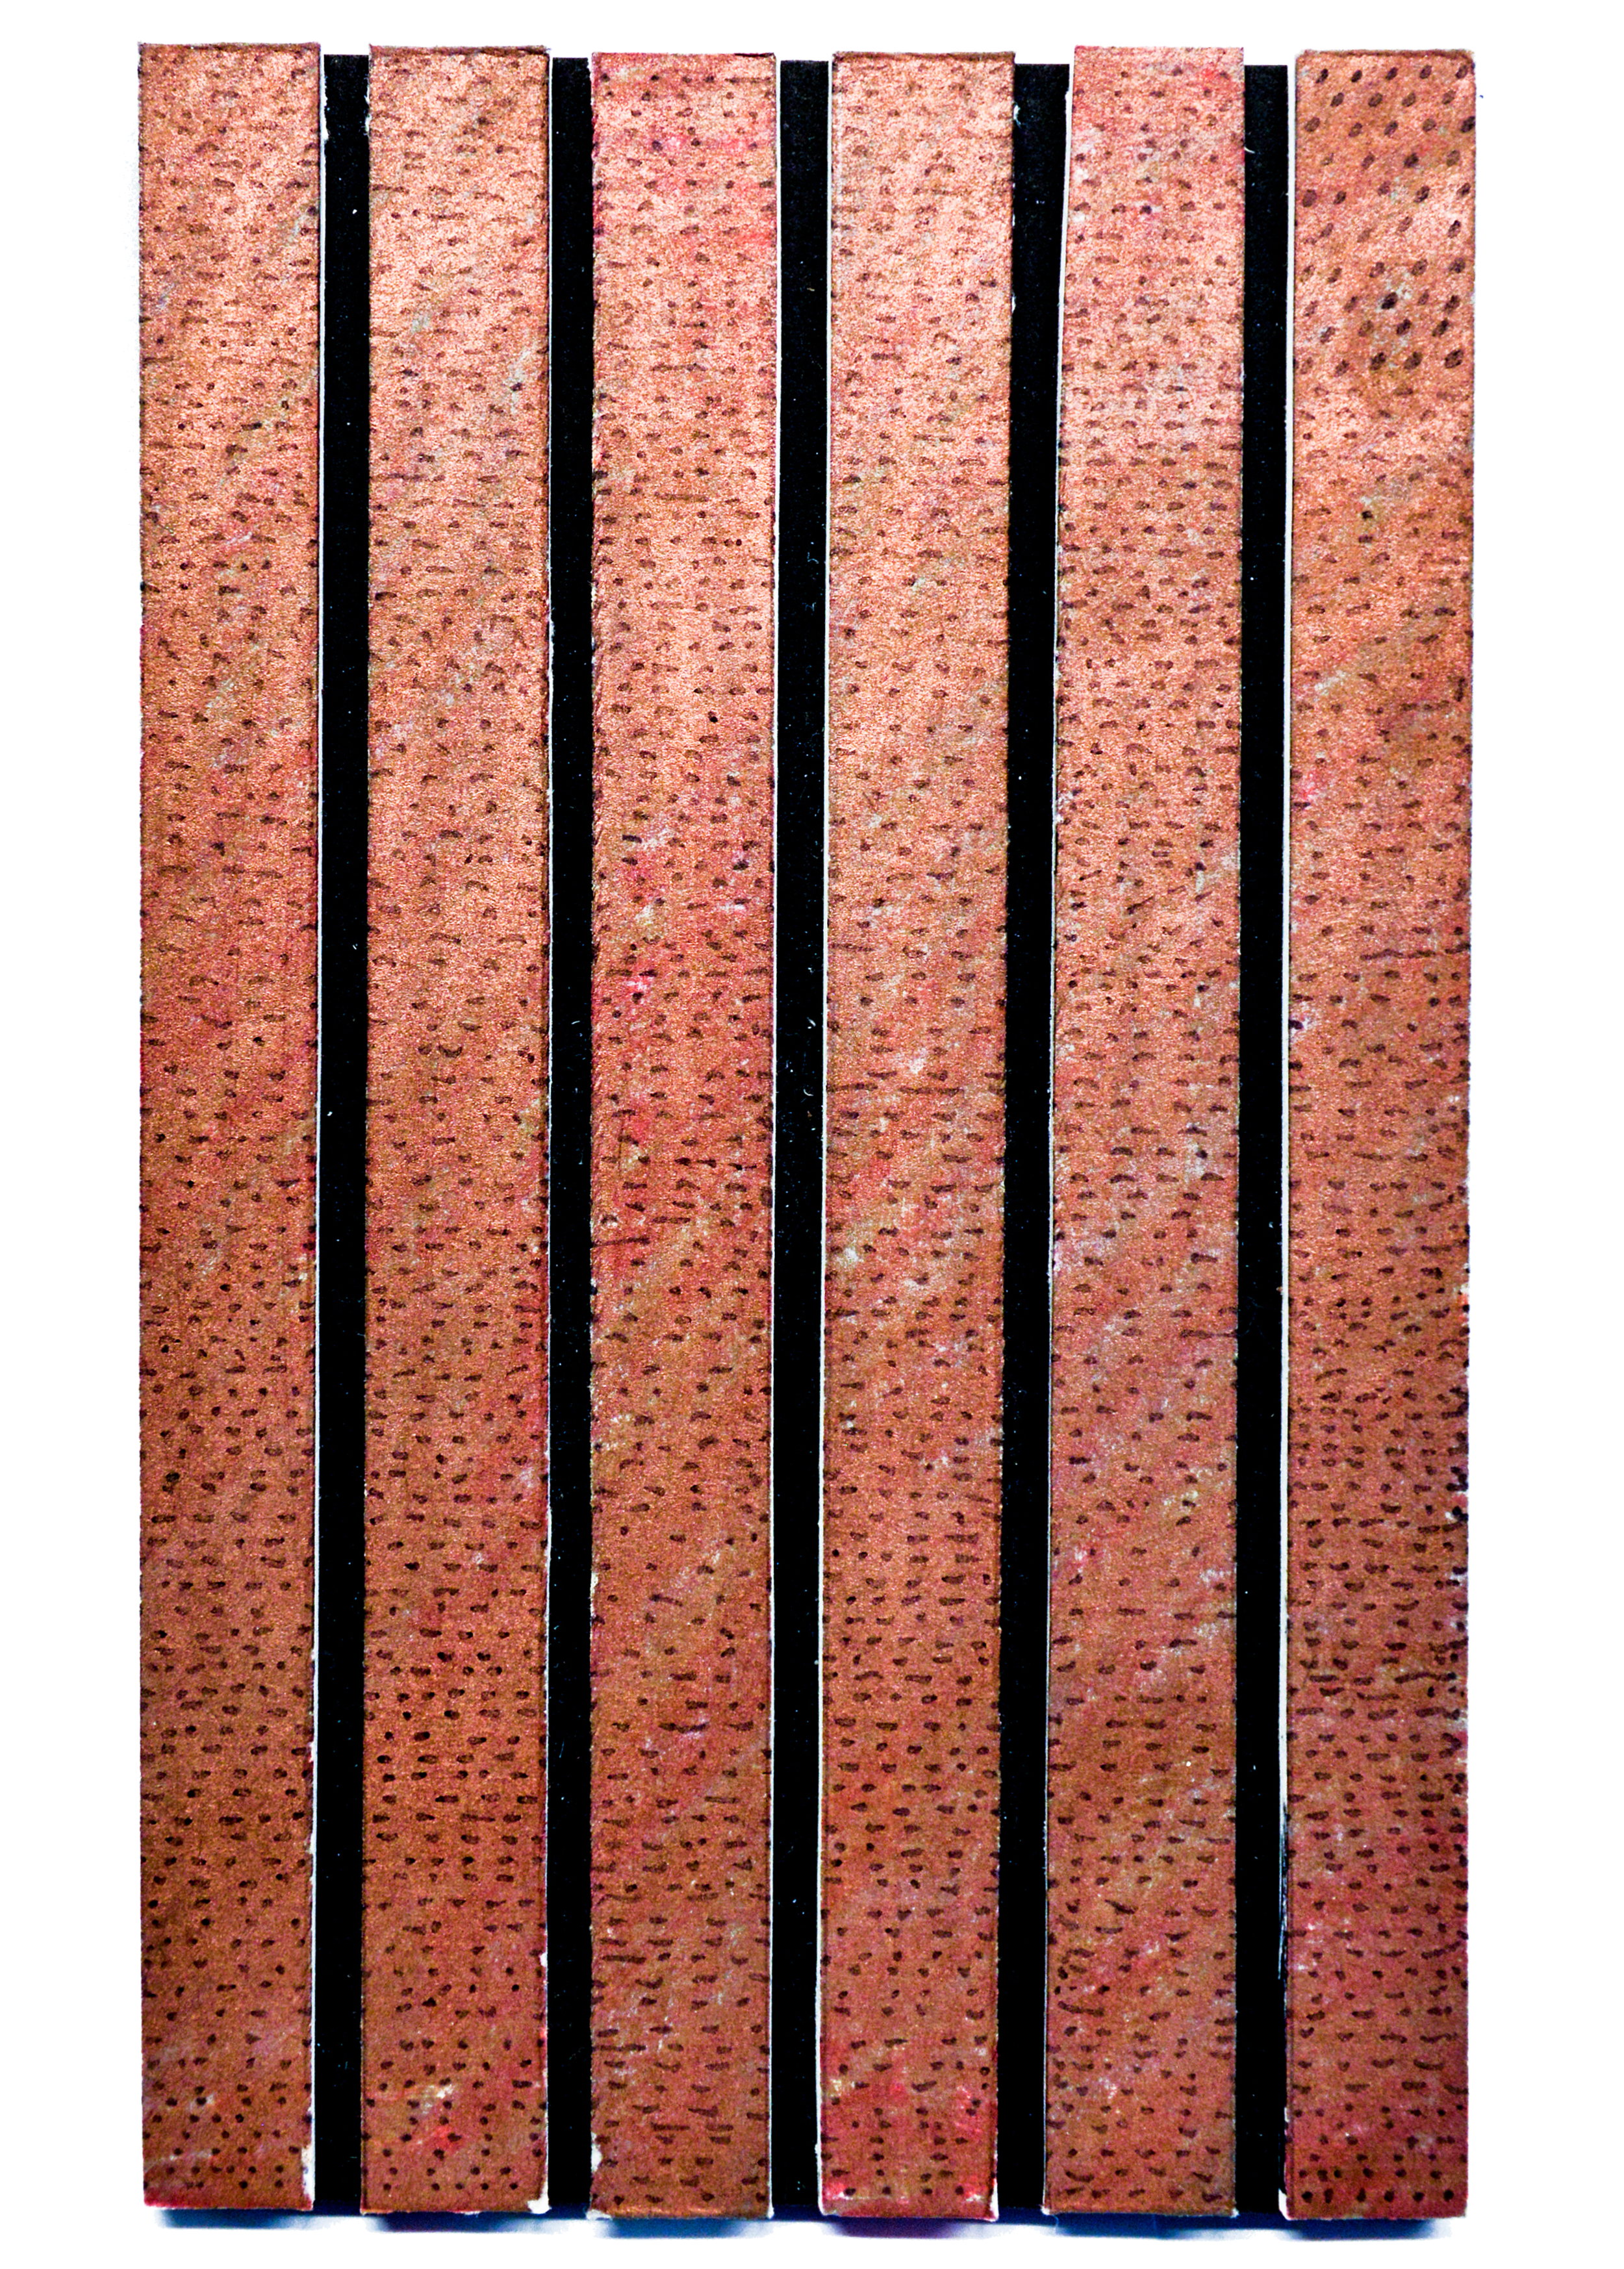 Copper Layered Panel.png